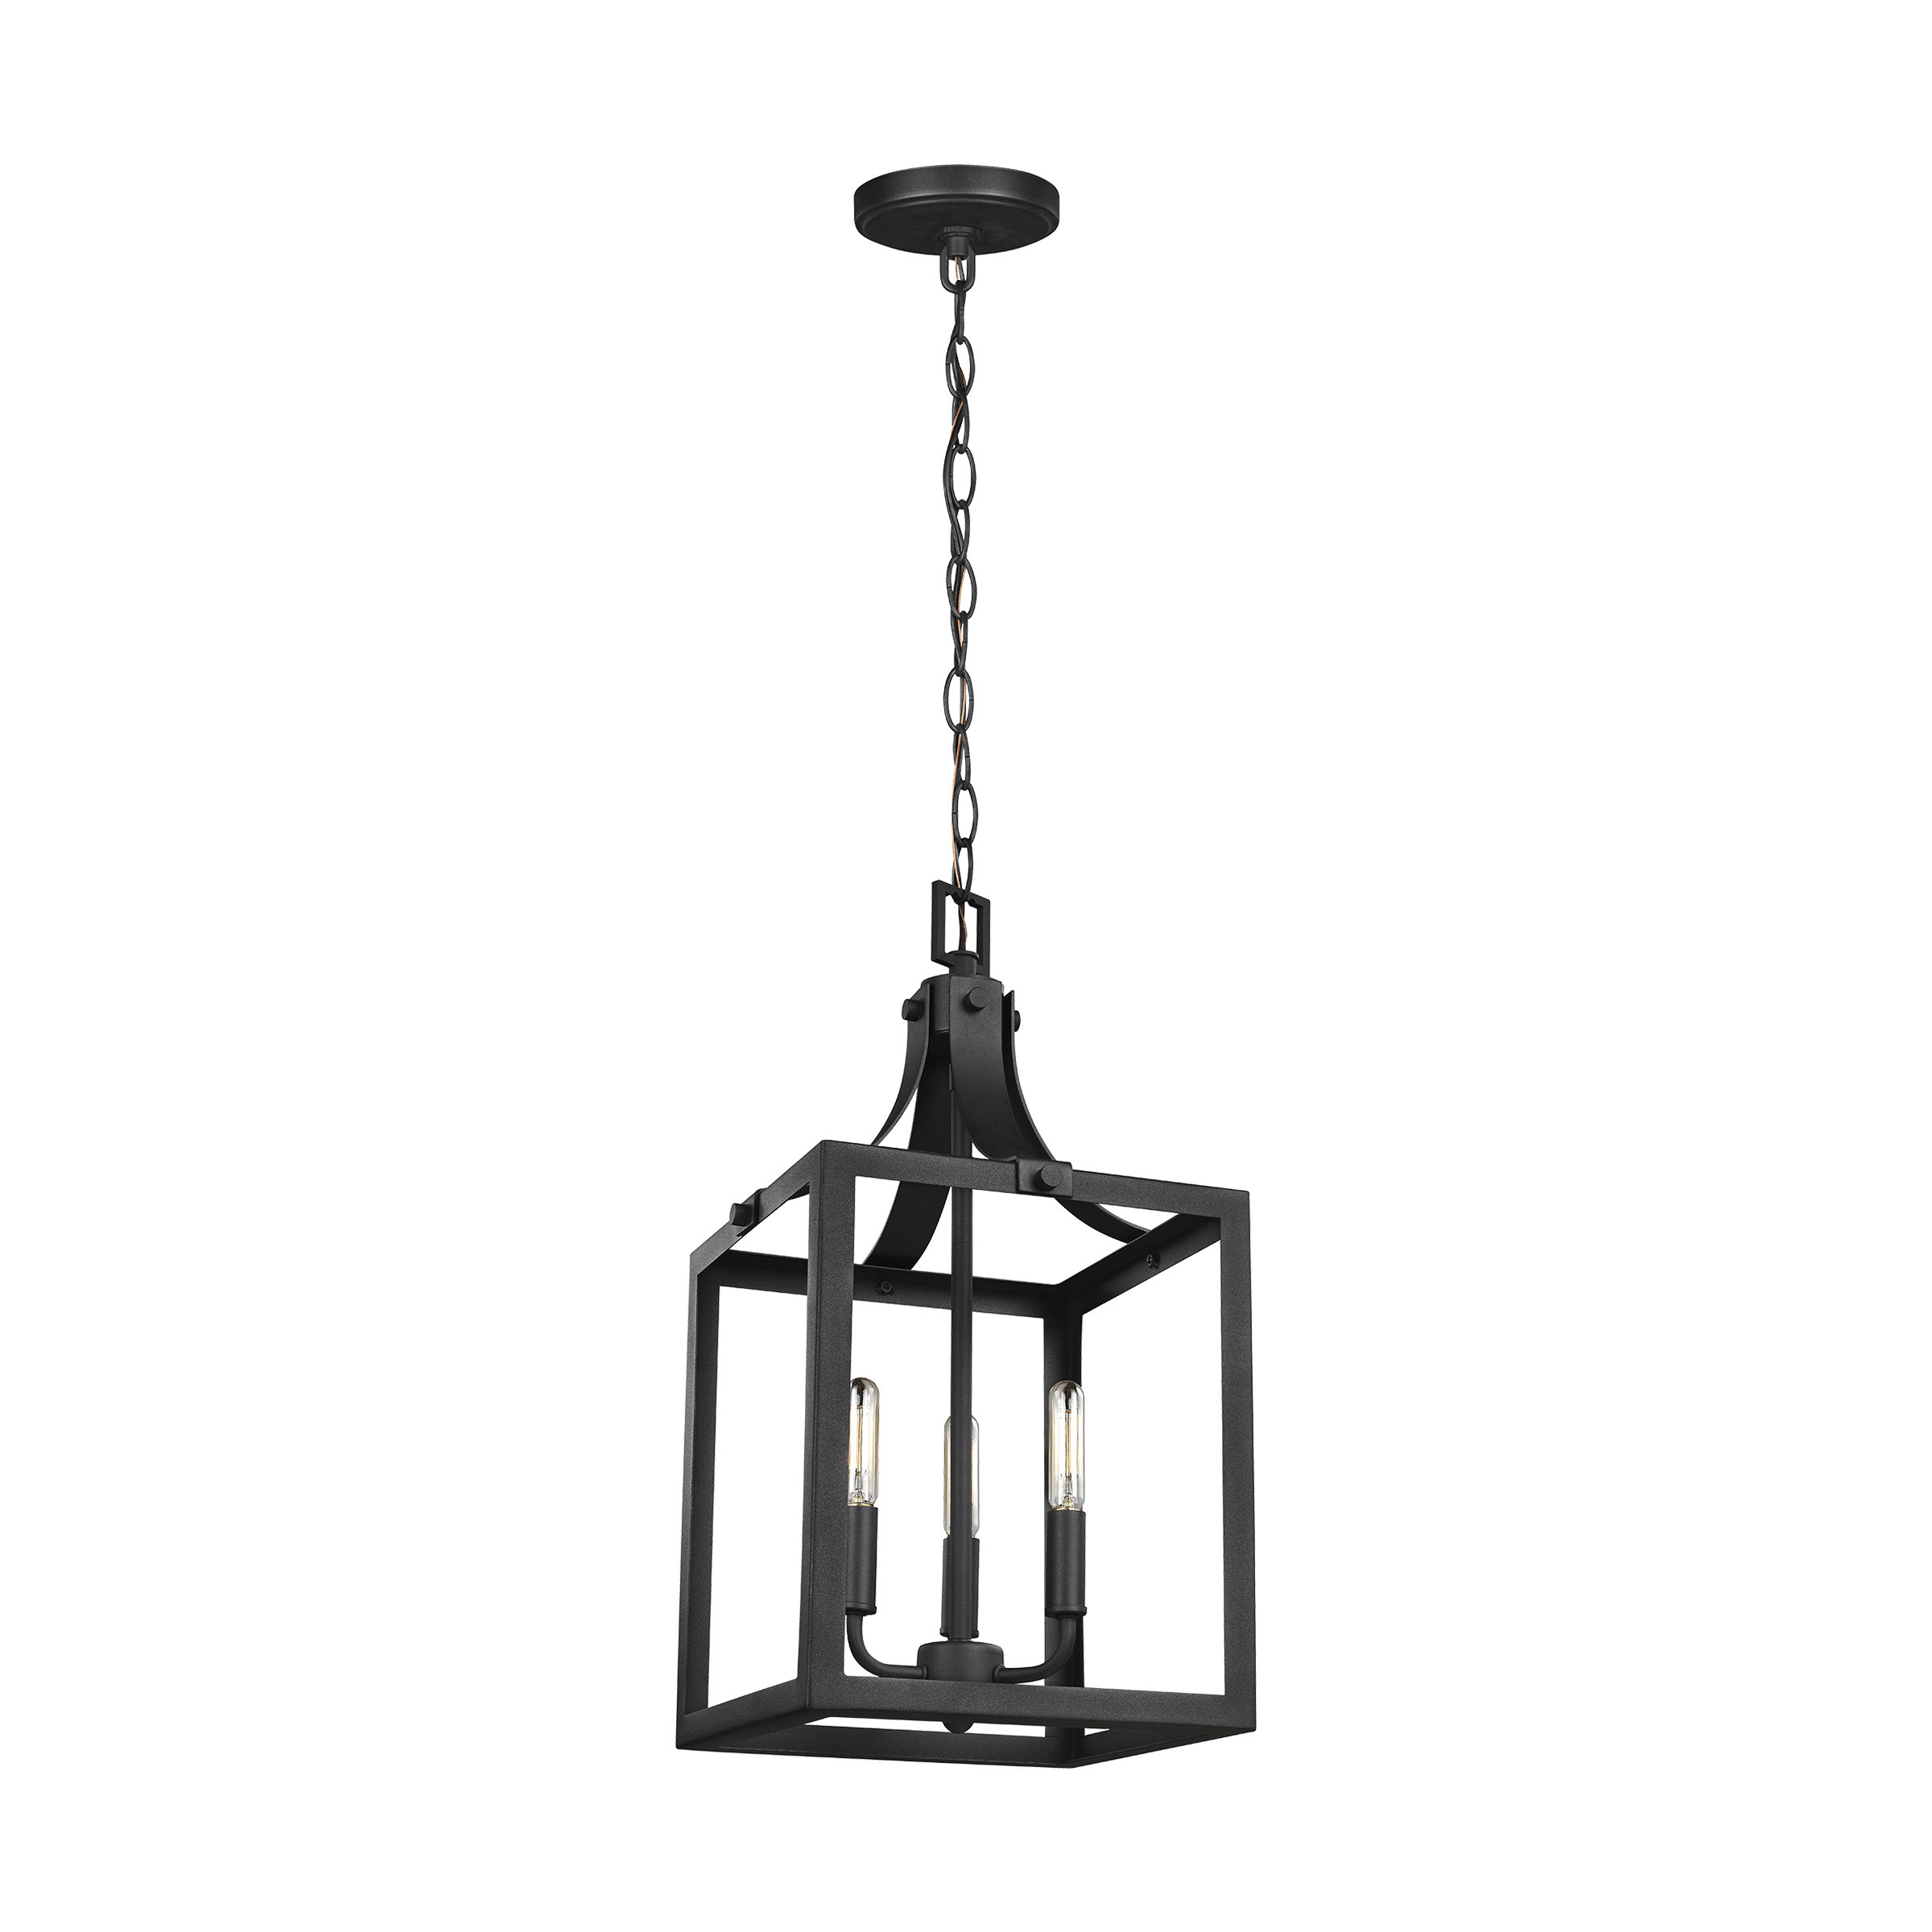 Fashionable Chauvin 3 Light Lantern Geometric Pendants Regarding Gracie Oaks Sherri Ann 3 Light Lantern Square / Rectangle Pendant (View 10 of 25)